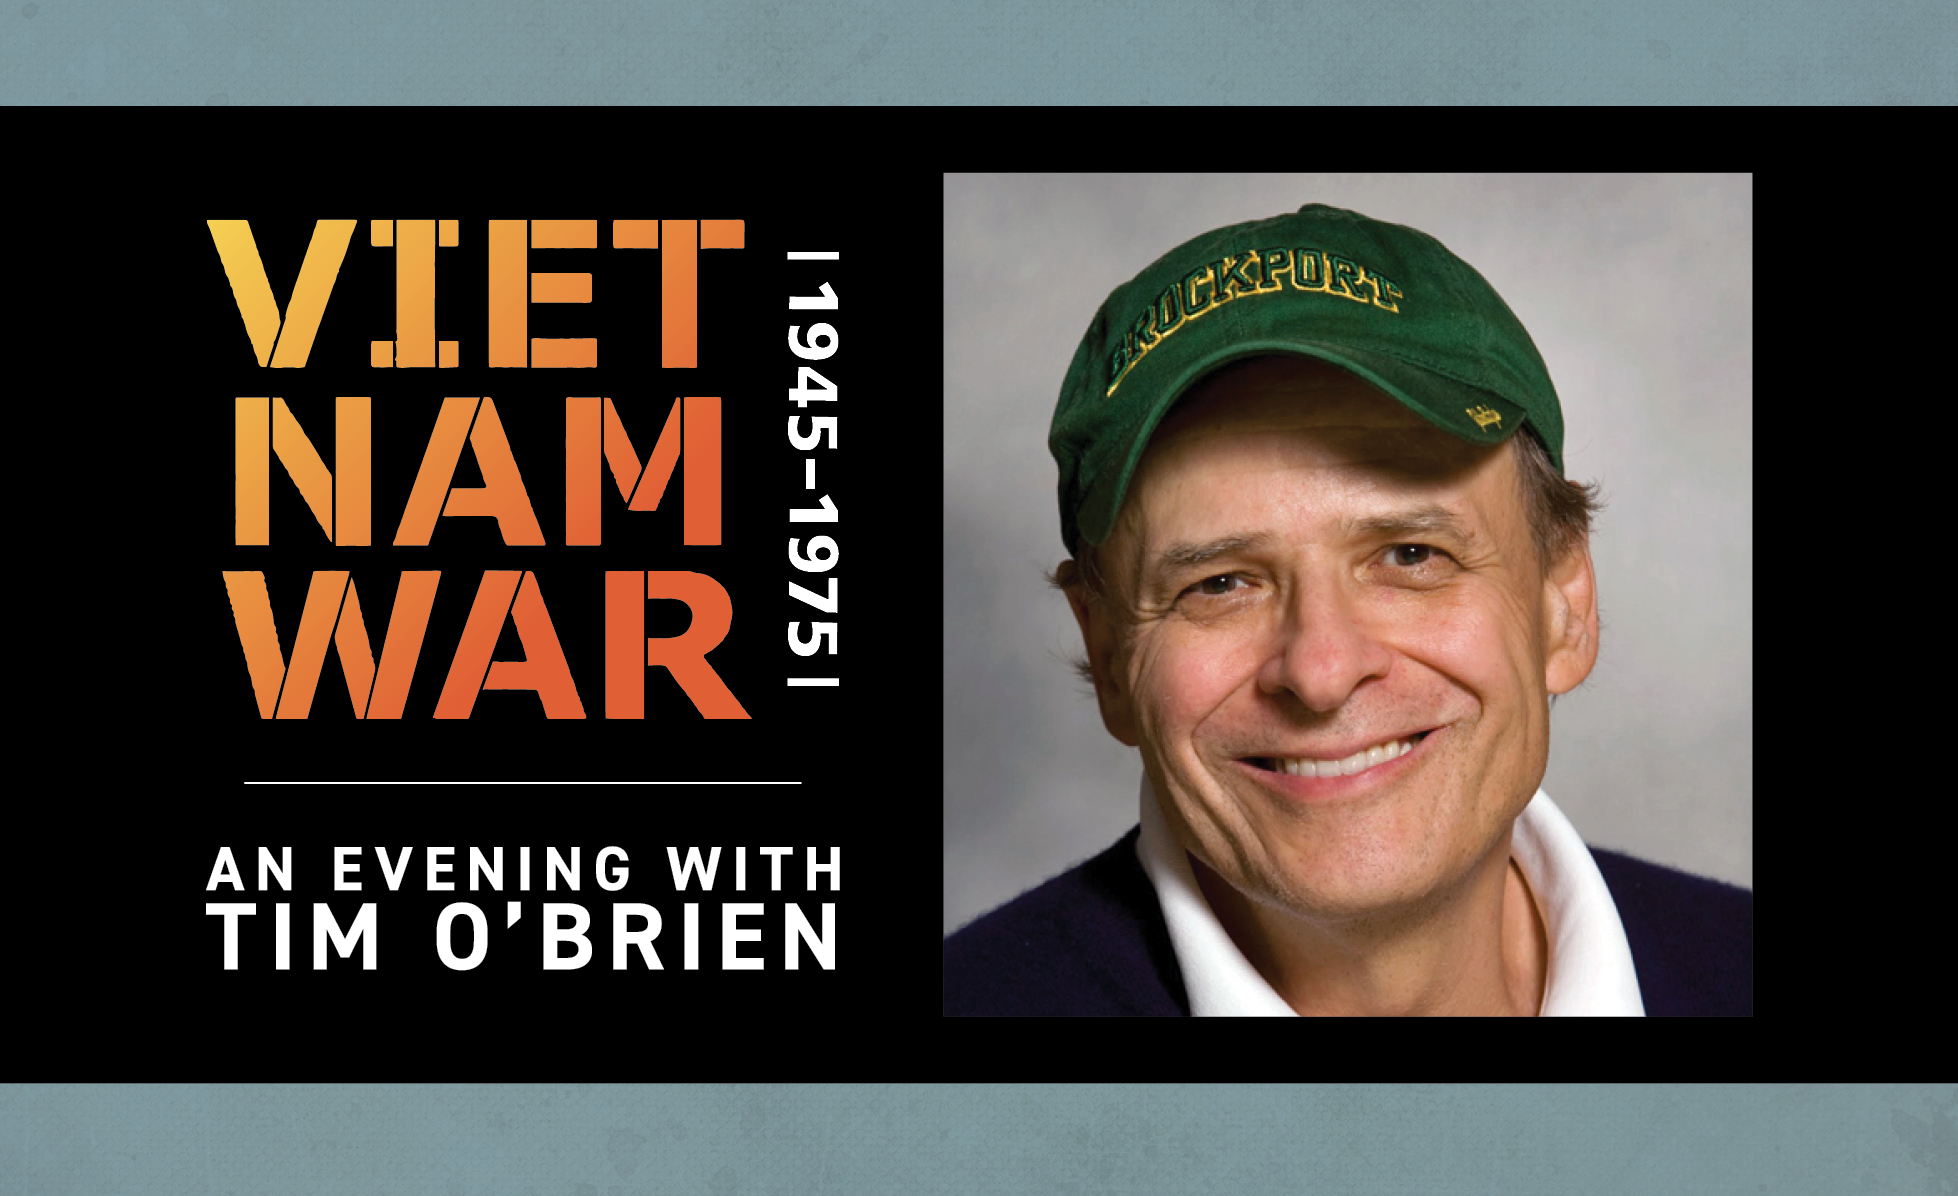 An Evening with Tim O'Brien